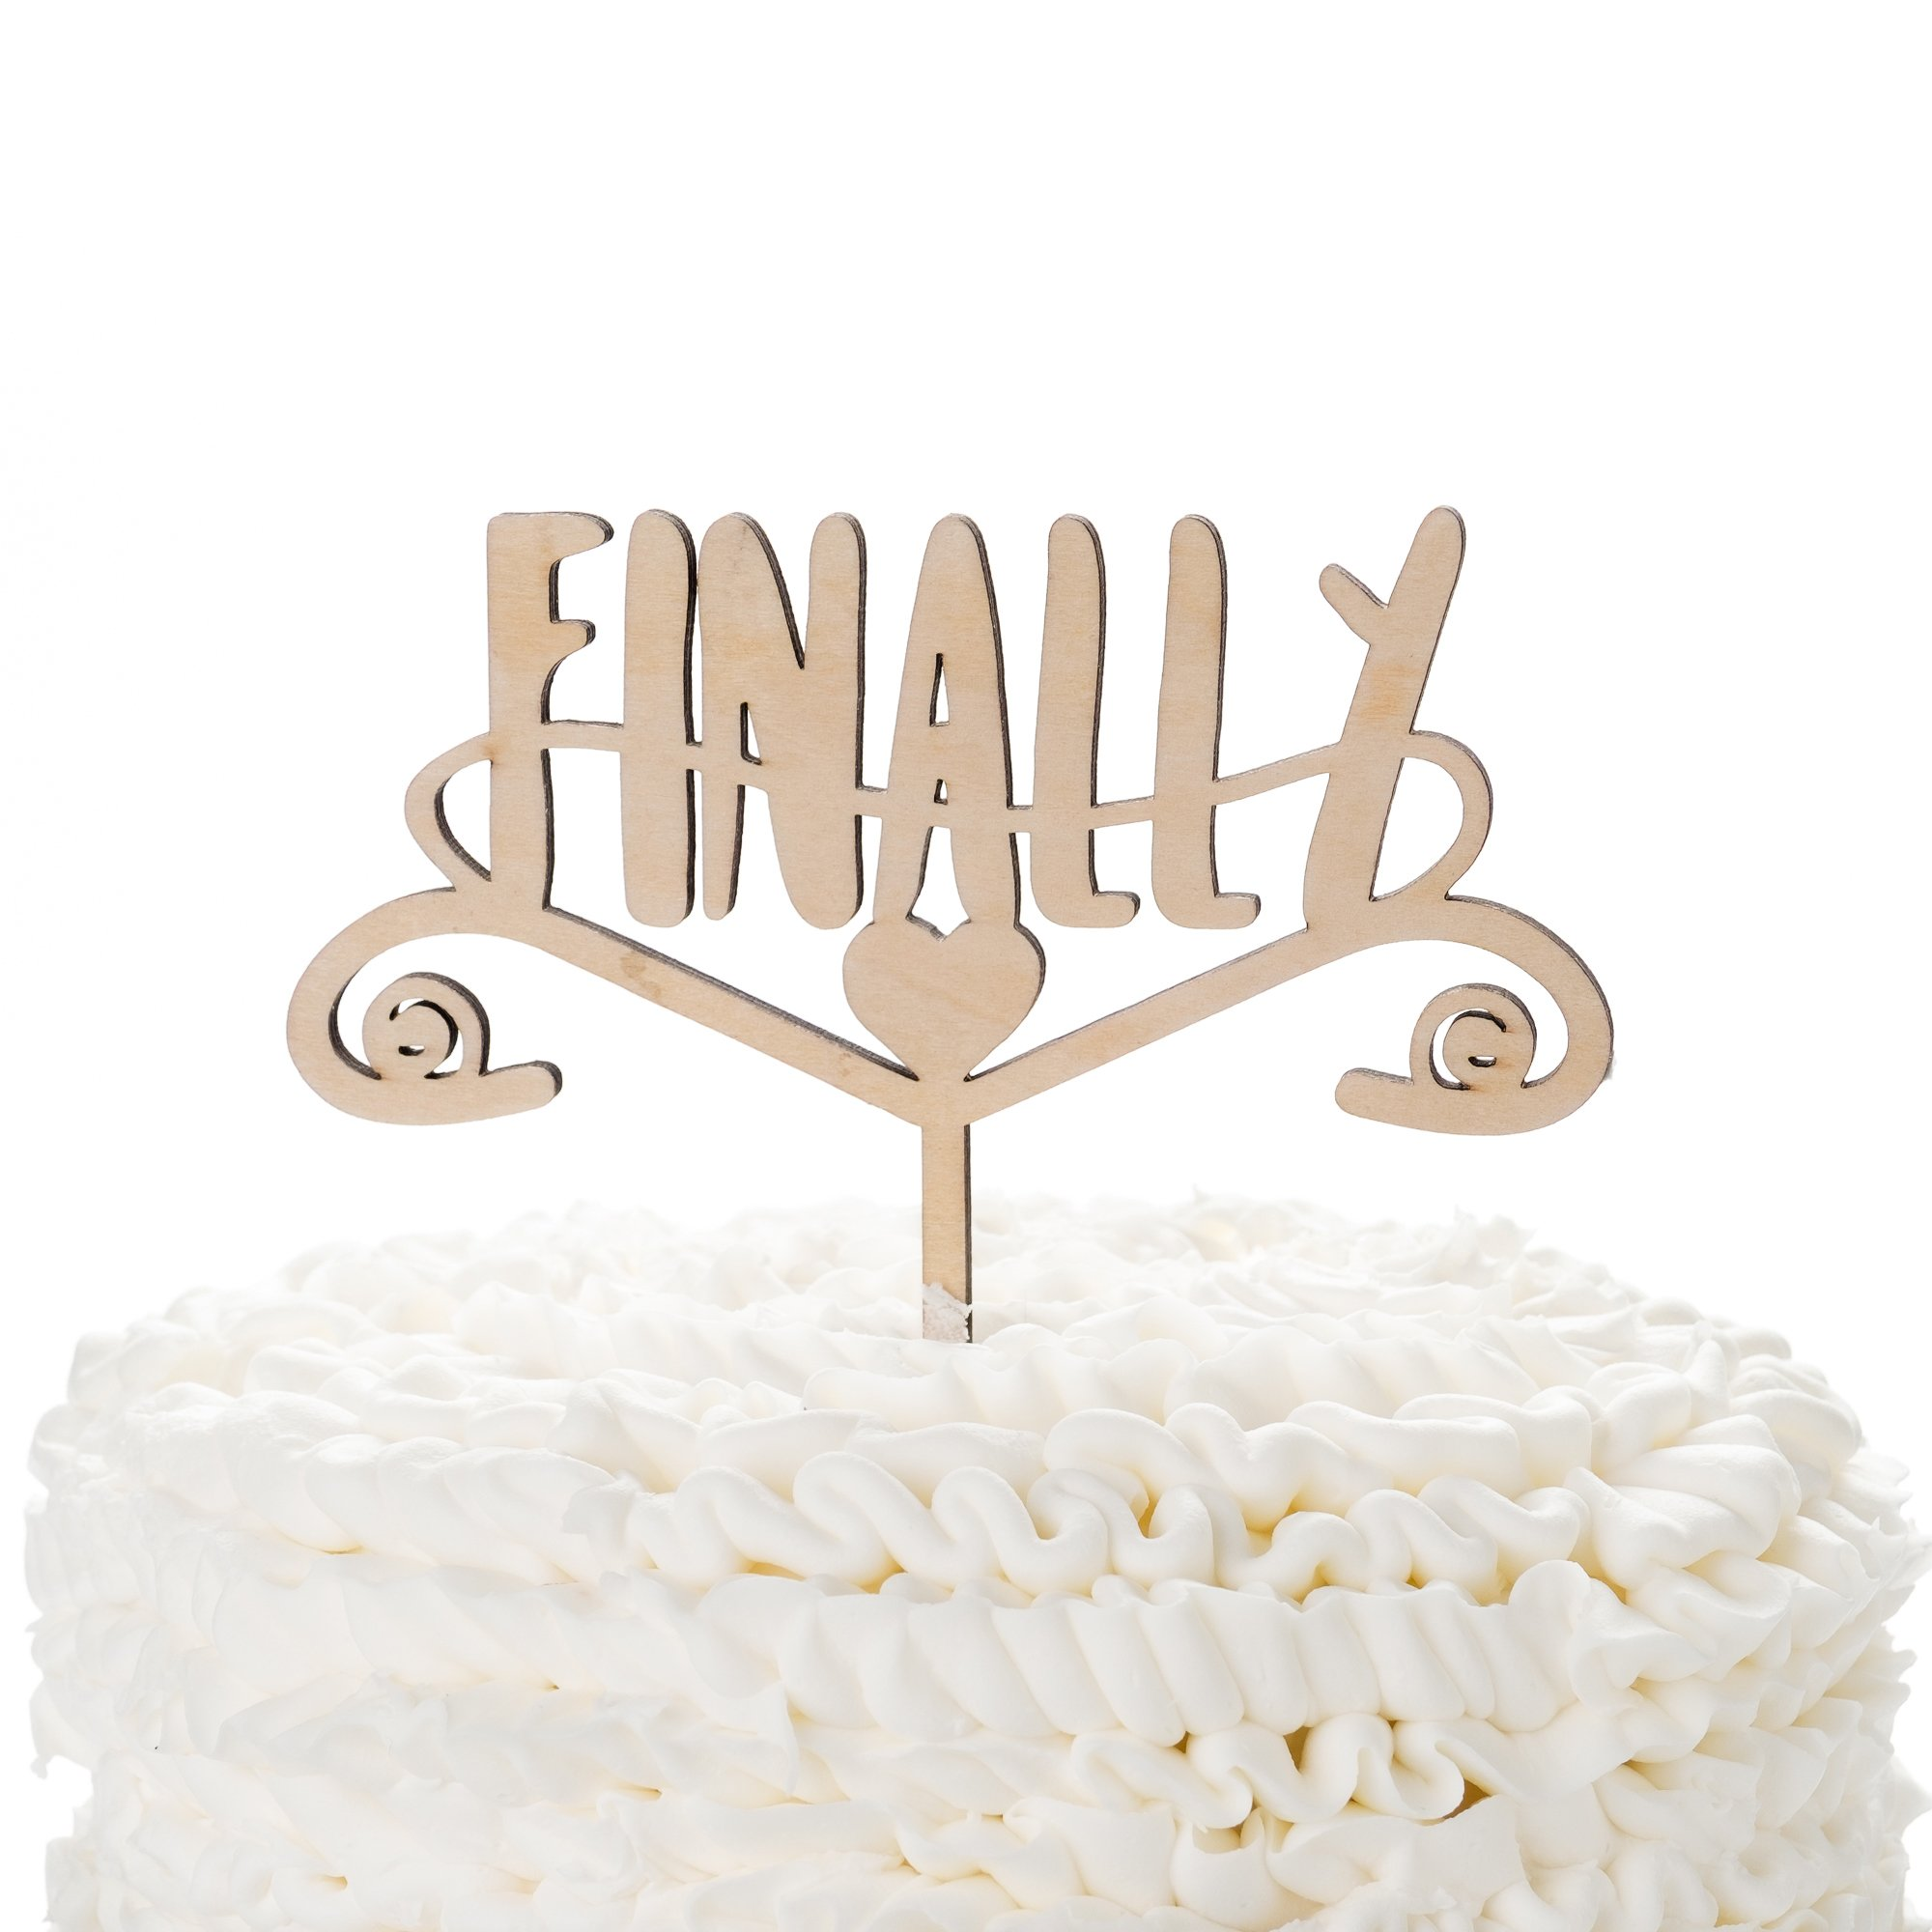 Ella Celebration Finally Wooden Wedding Cake Topper, Rustic Wood Toppers (Finally)